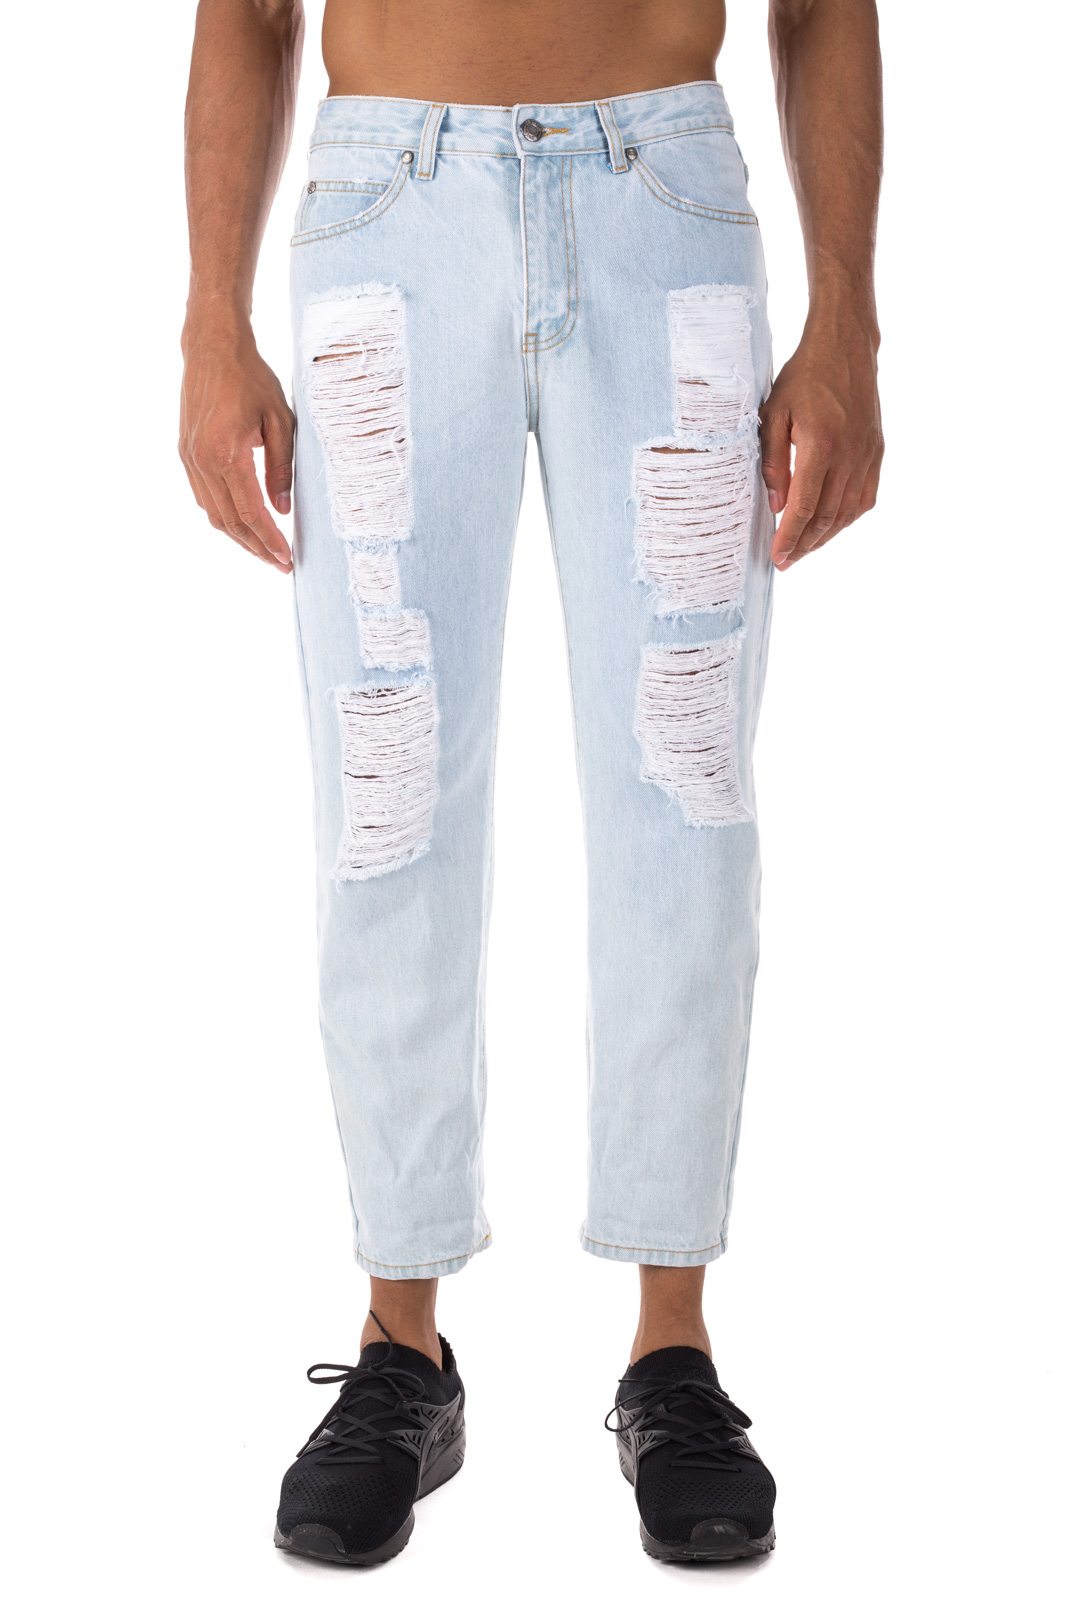 Dr. Denim - Jeans Otis ripped clear wash